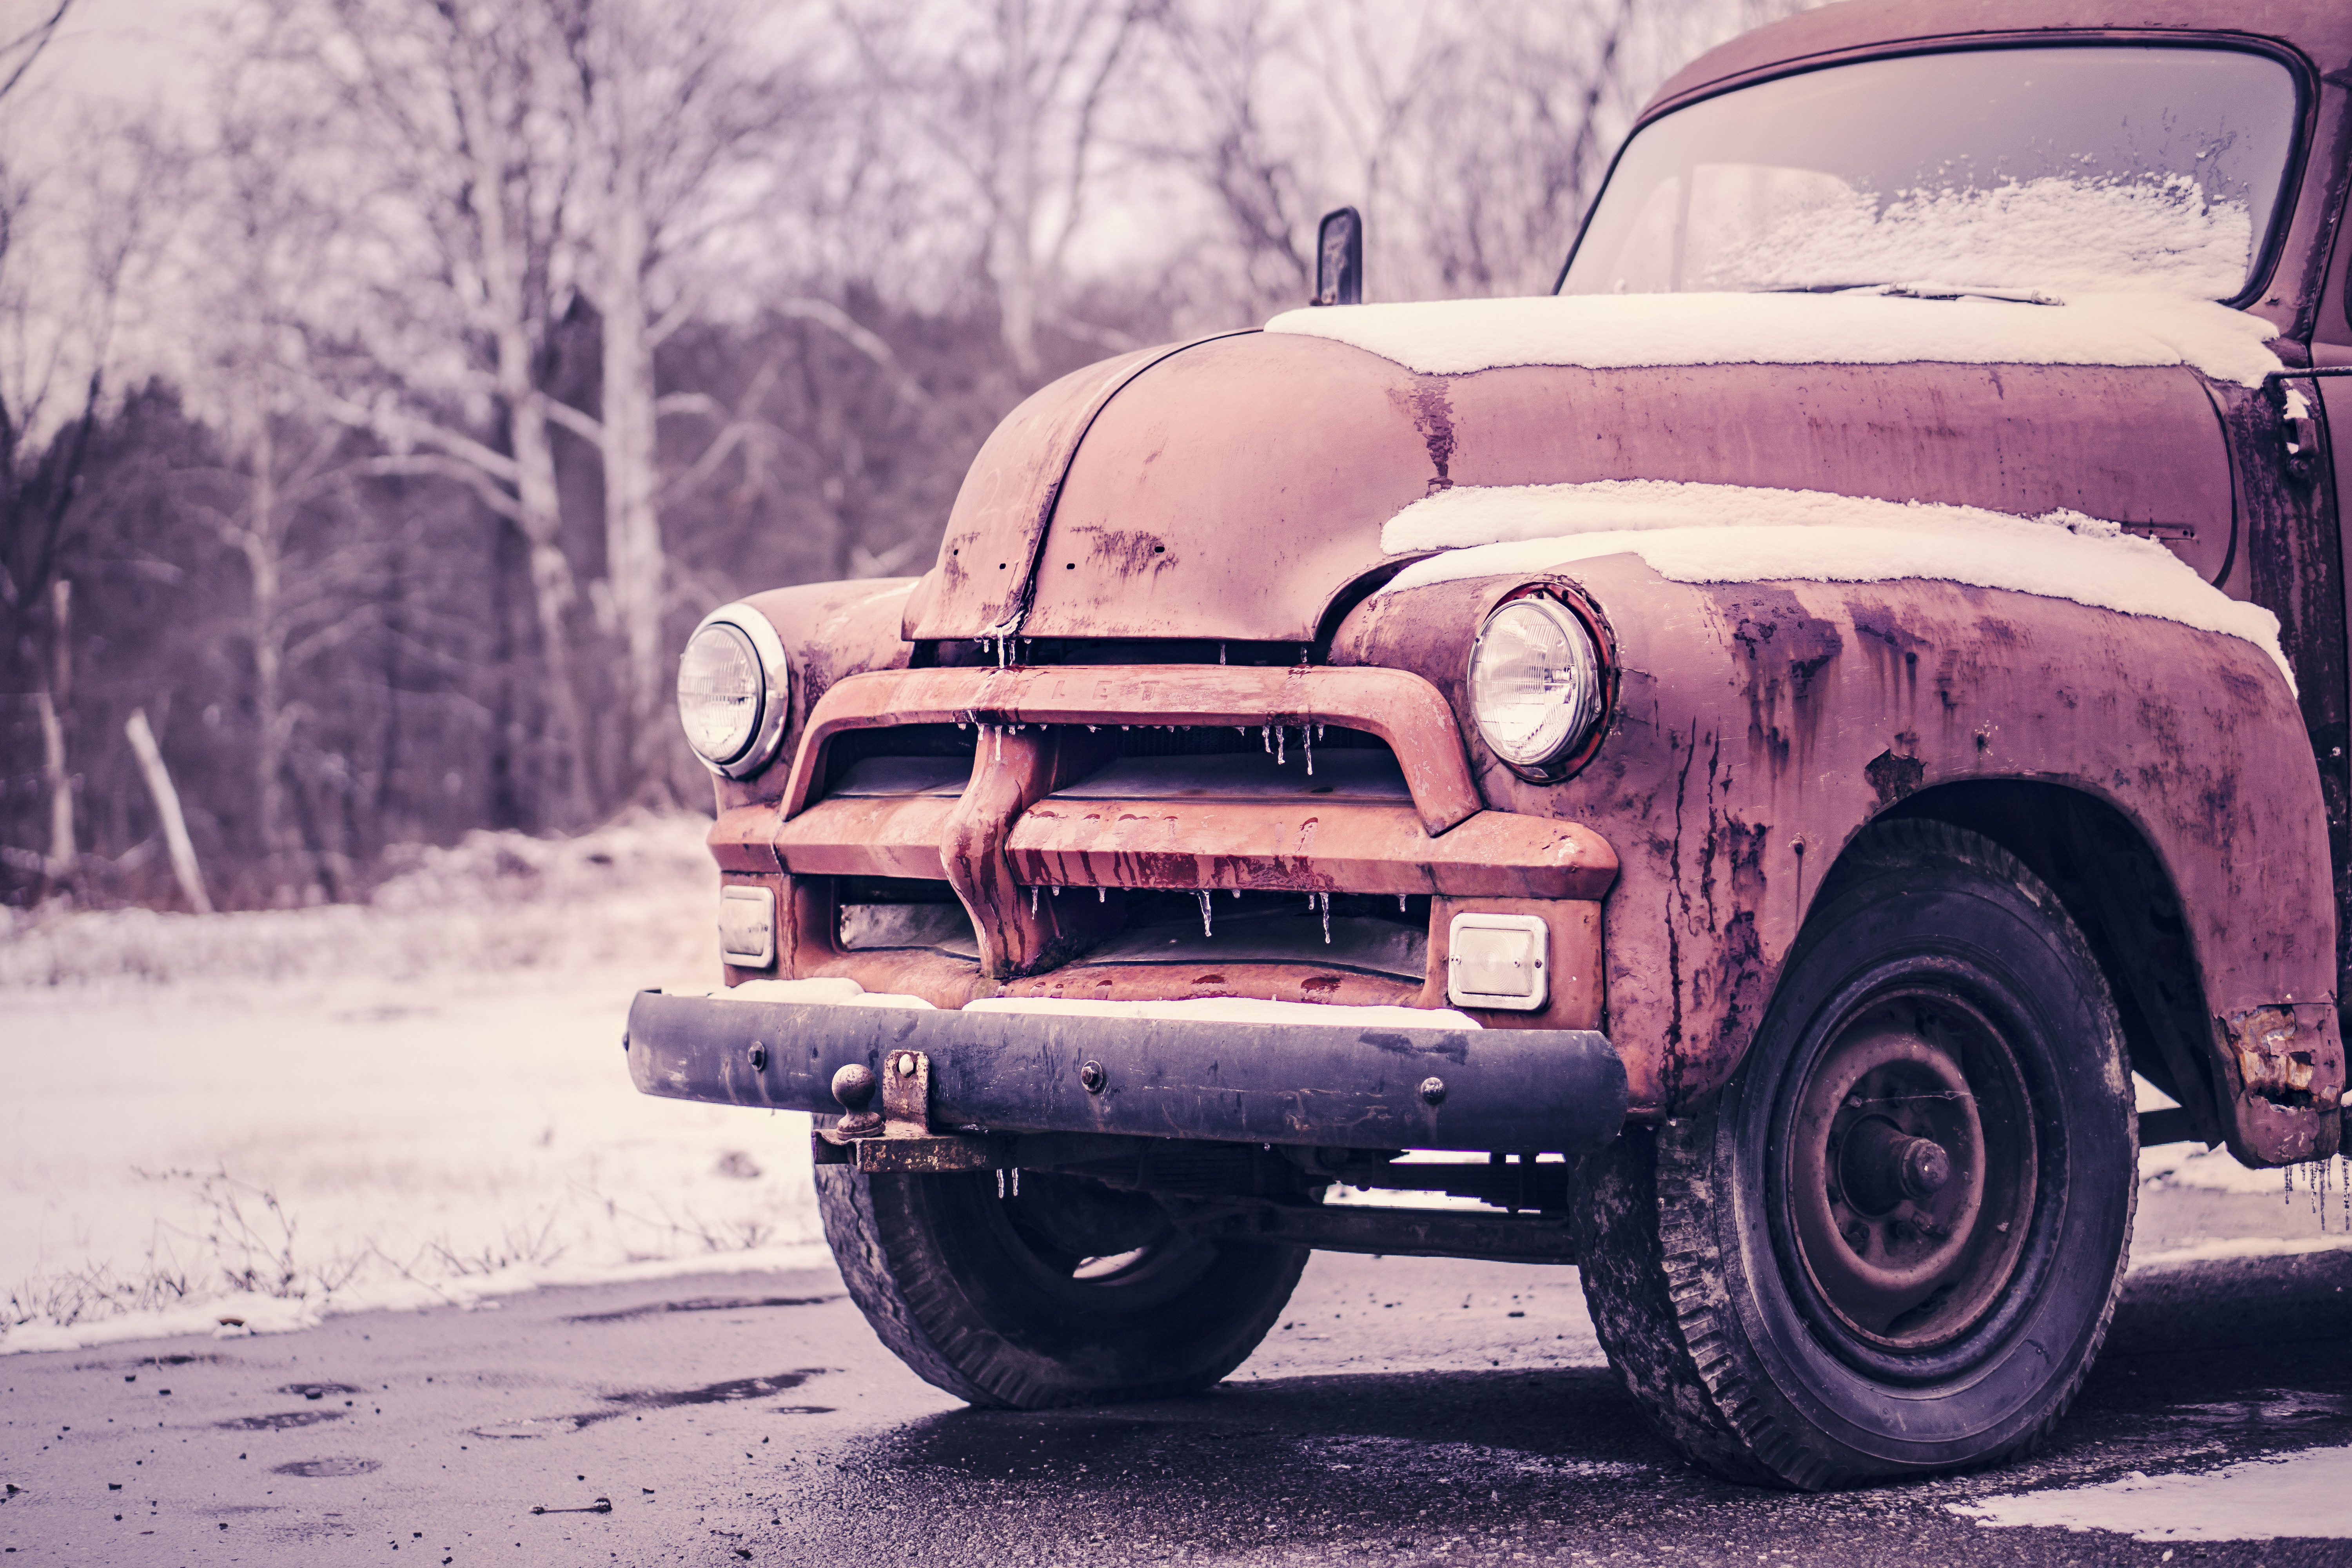 Rusty Classic Truck Free Photo - Gratisography